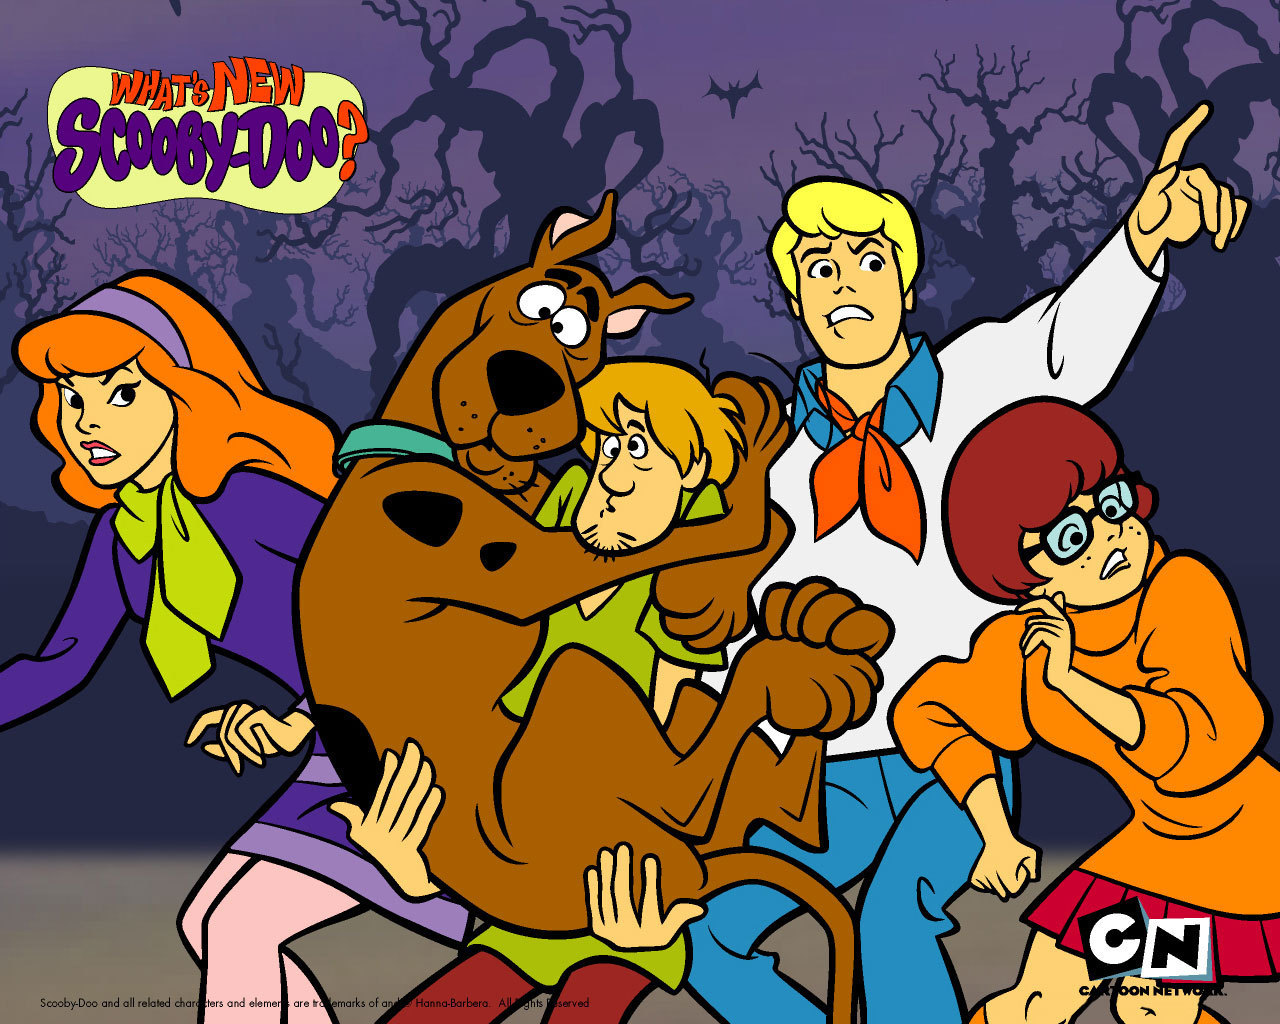 Scooby doo Wallpaper: Scooby doo